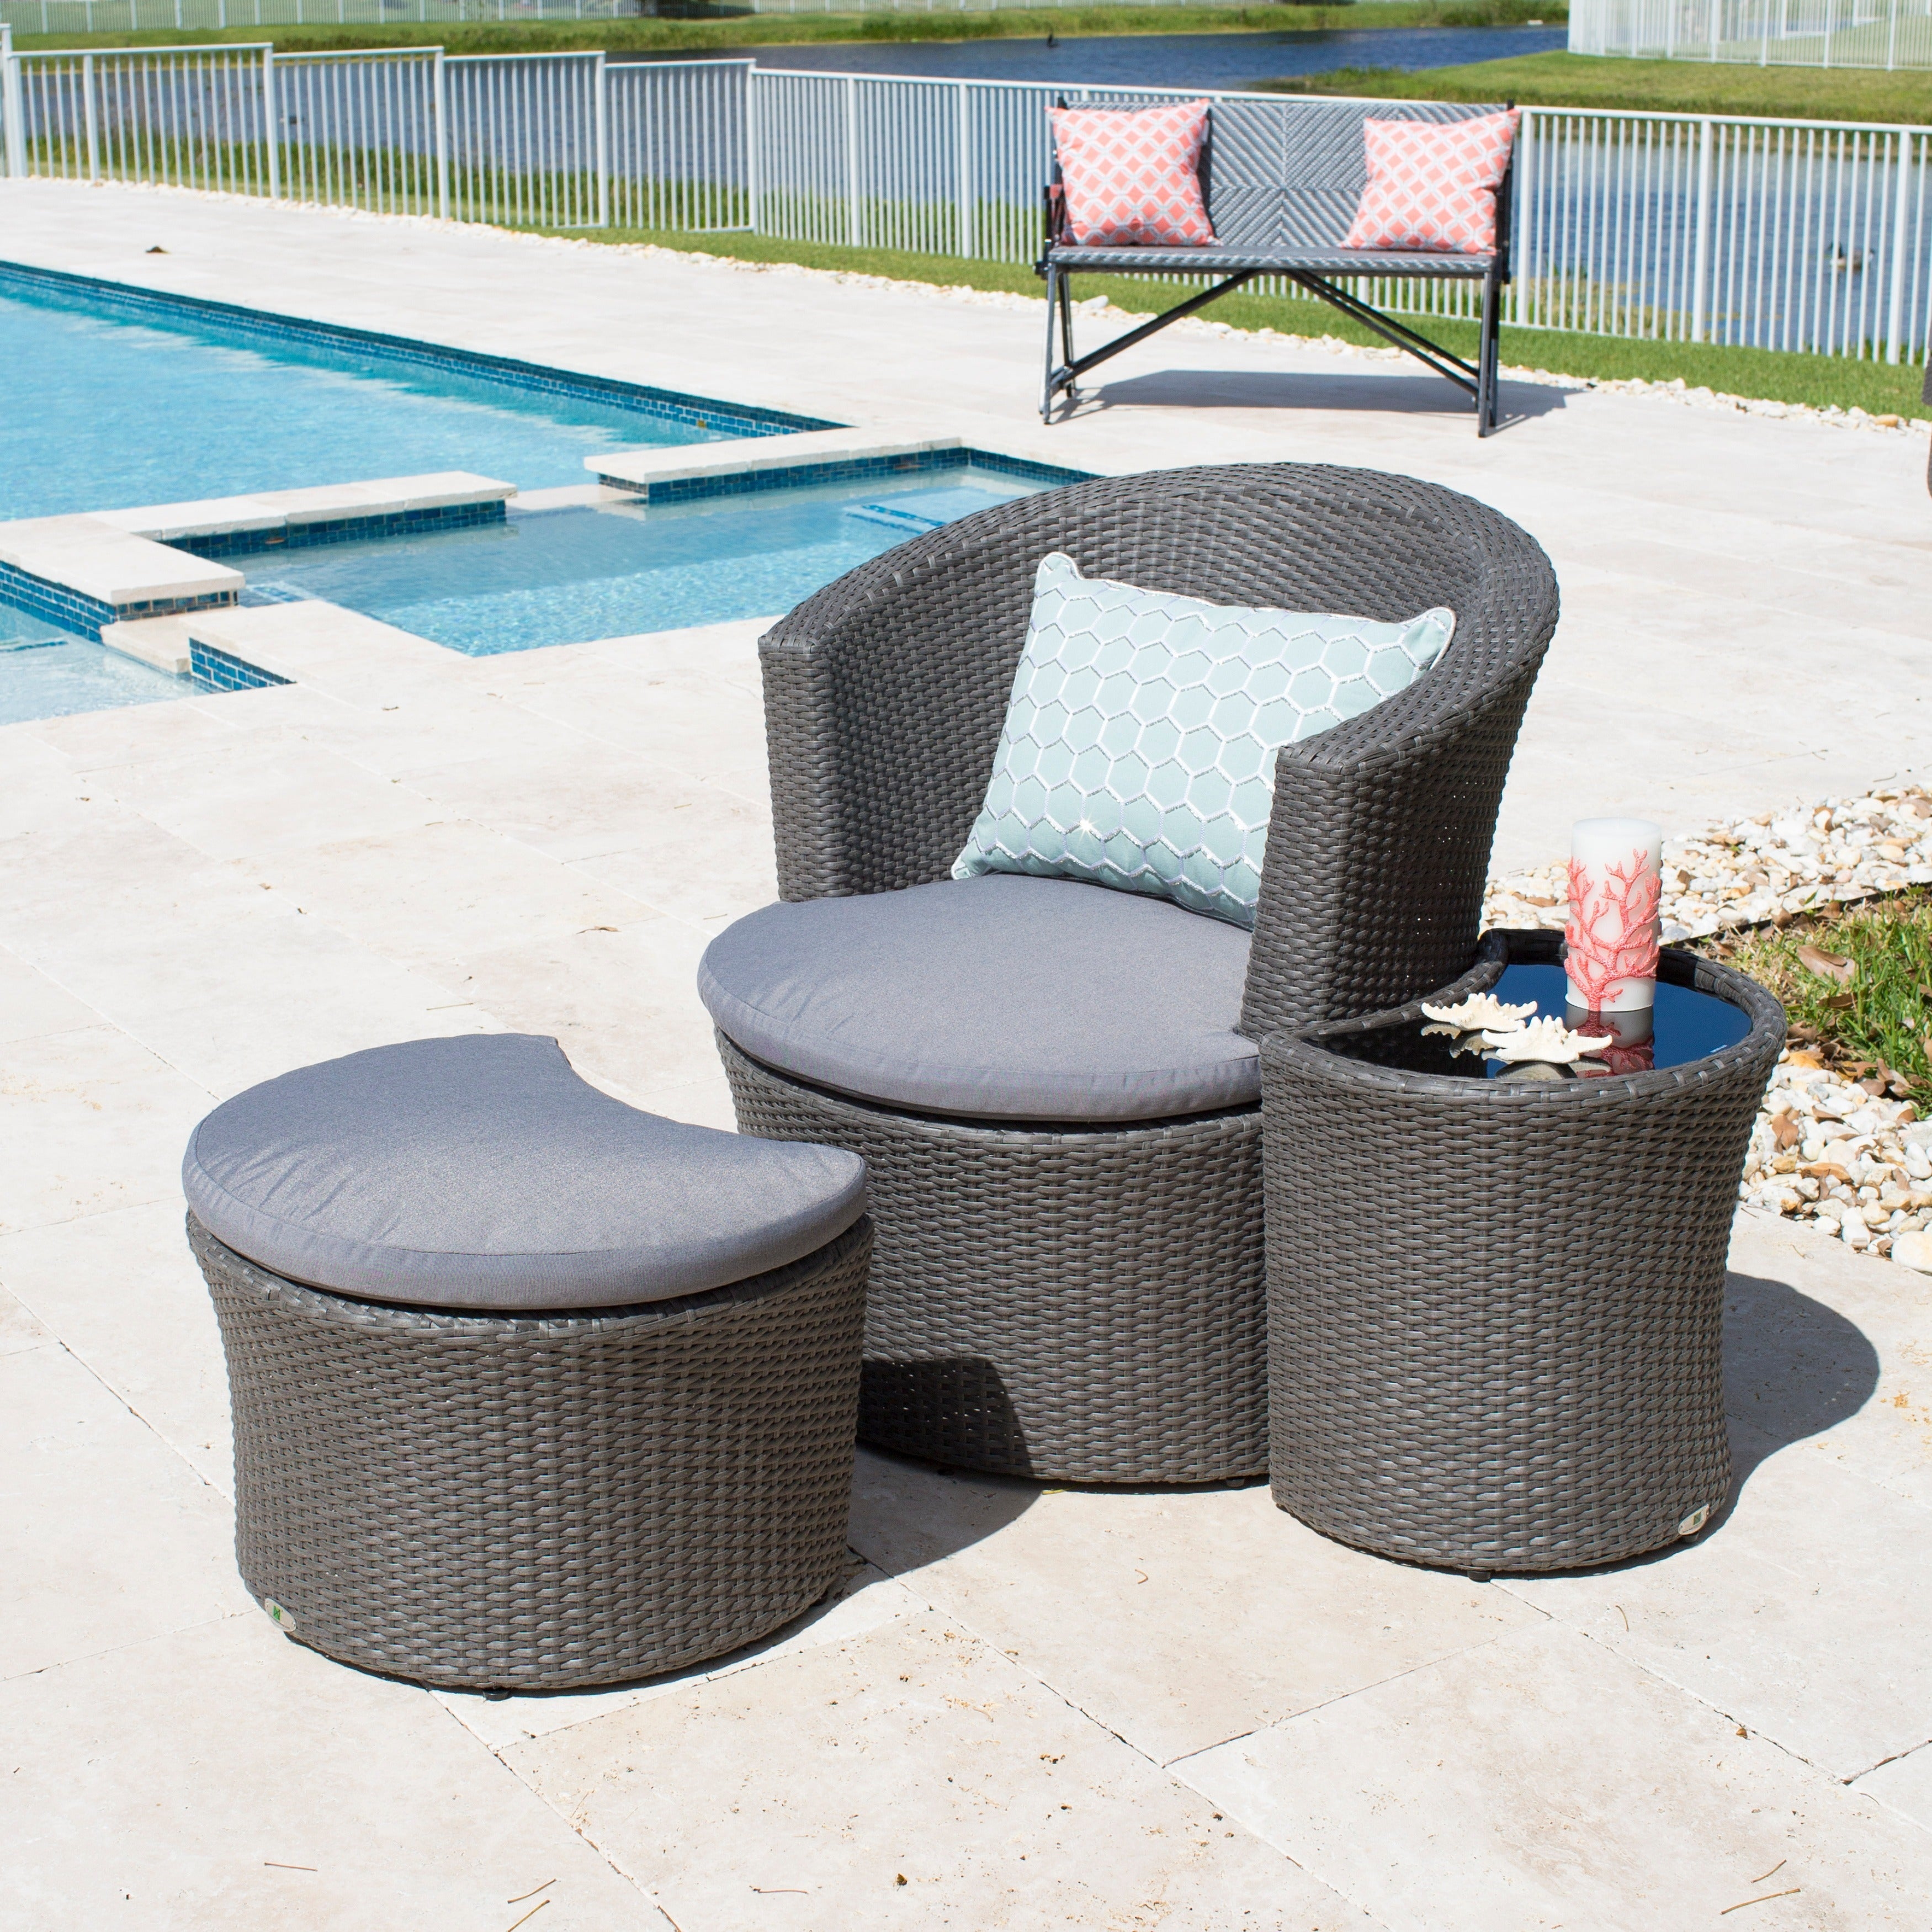 Superb Insideout By Mix Outdoor Grey Resin Wicker Rattan Lounge Chair Ottoman Side Table Set Caraccident5 Cool Chair Designs And Ideas Caraccident5Info